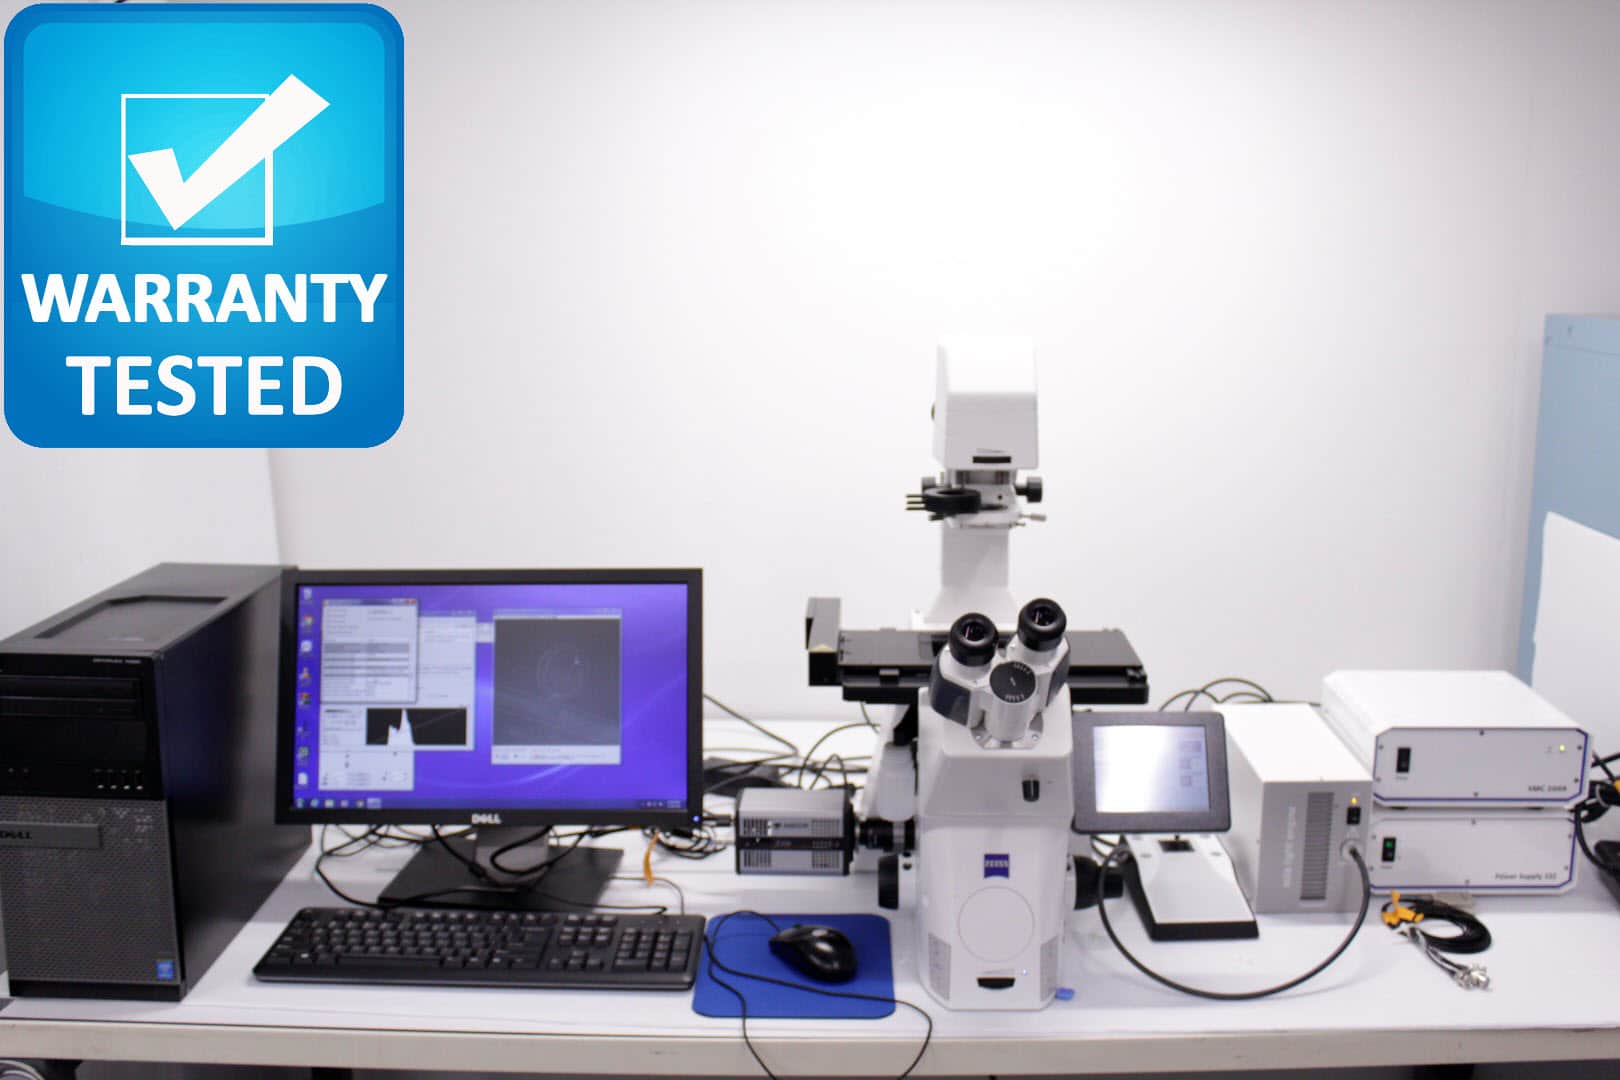 Zeiss AXIO Observer.Z7 Inverted Motorized Fluorescence Microscope w/ Andor Xyla Camera (Consignment)